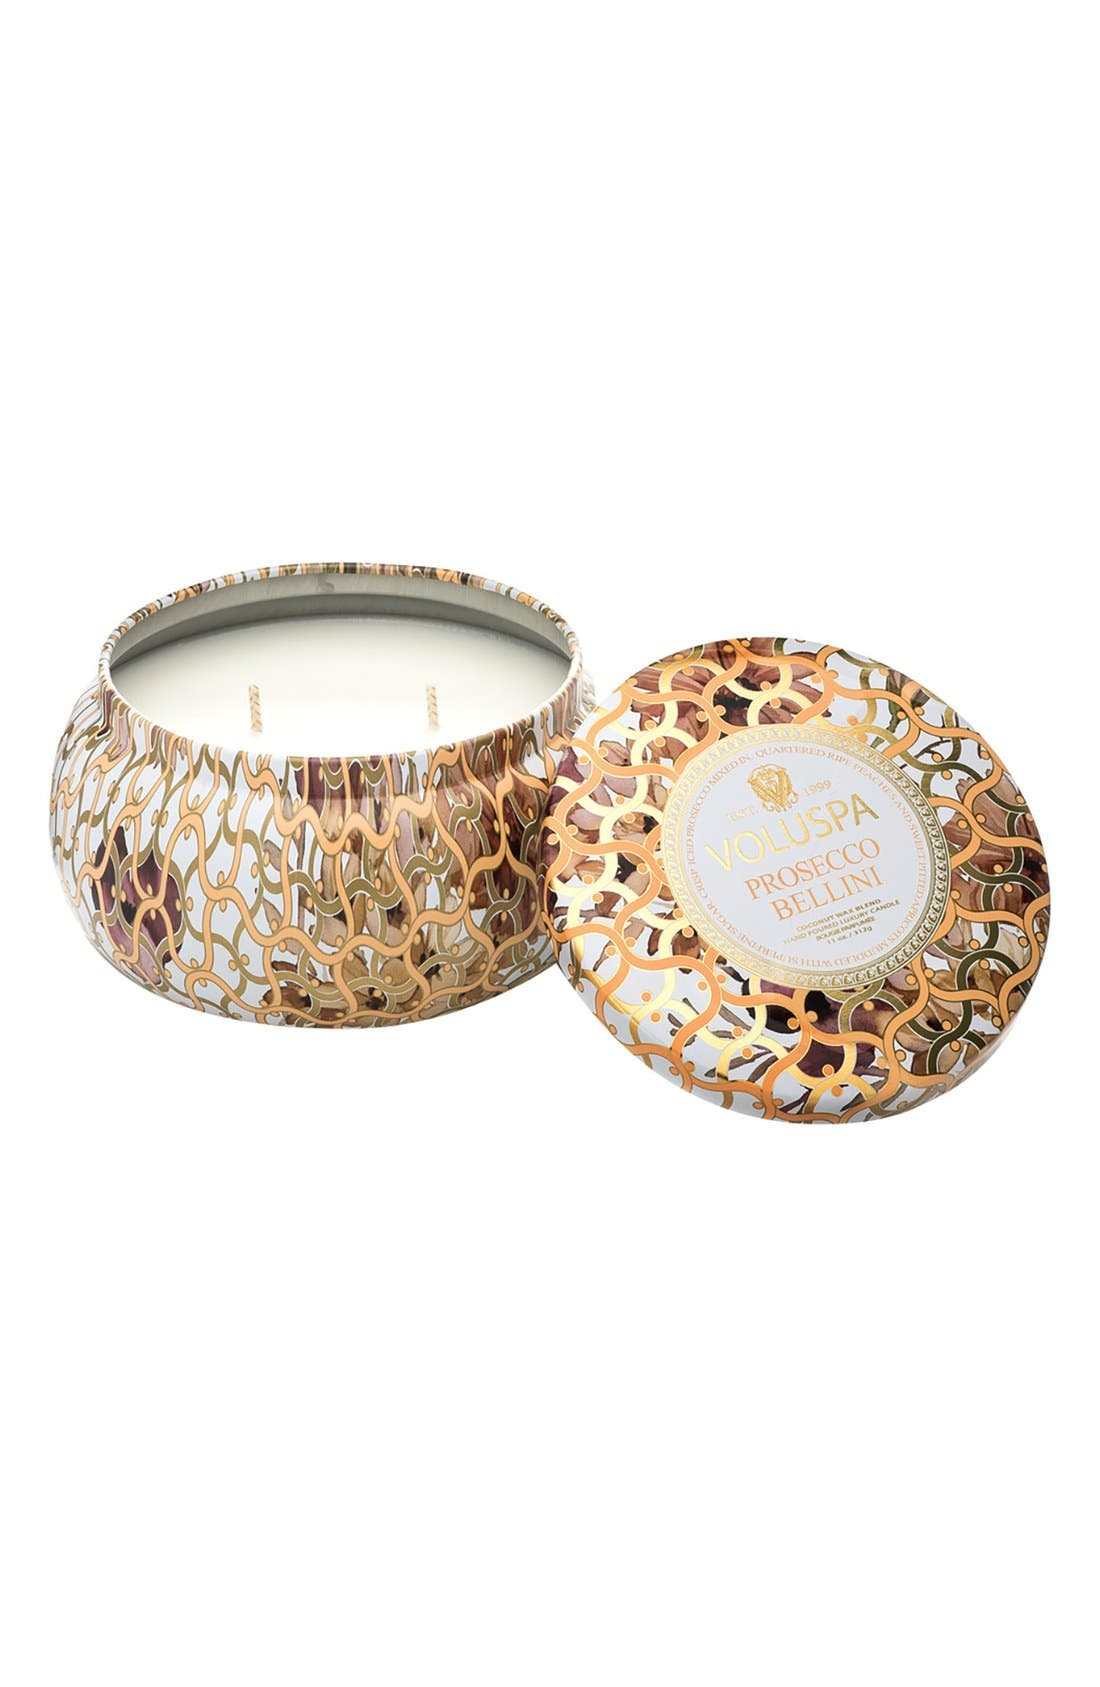 Voluspa 'Maison Blanc - Prosecco Bellini' Two-Wick Candle